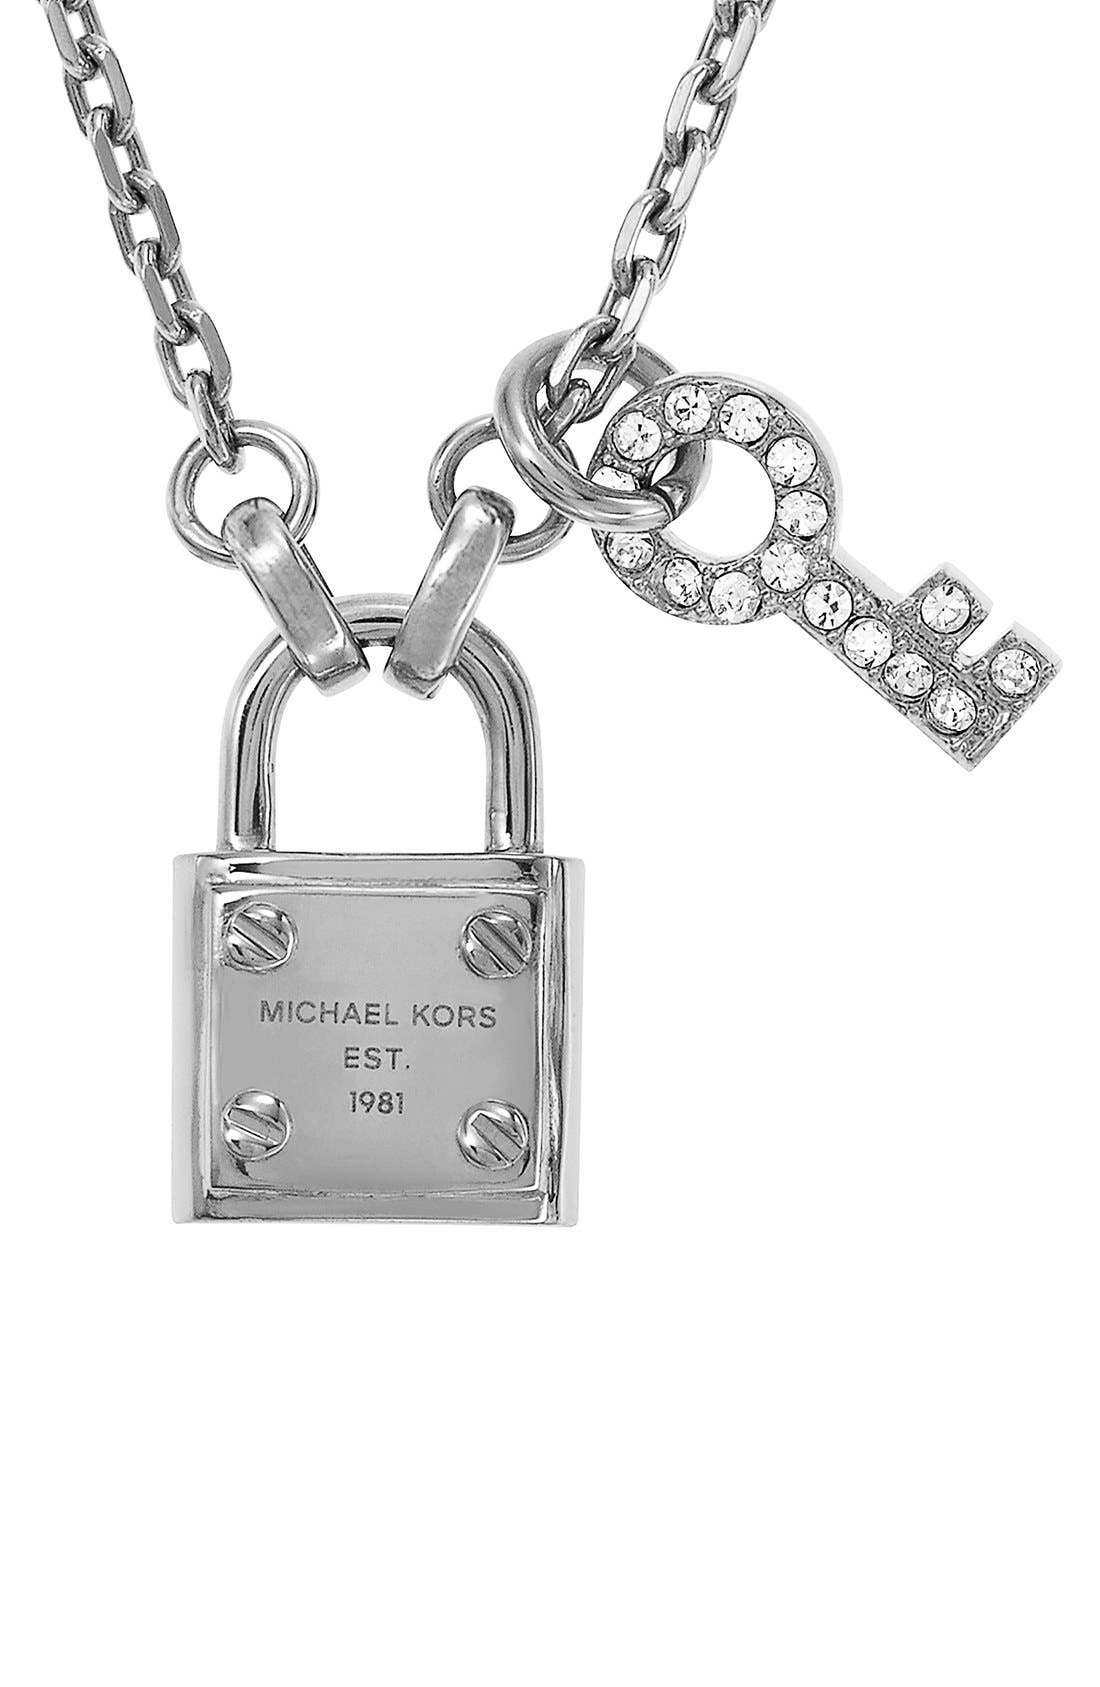 Main Image - Michael Kors 'Brilliance' Lock & Key Charm Necklace